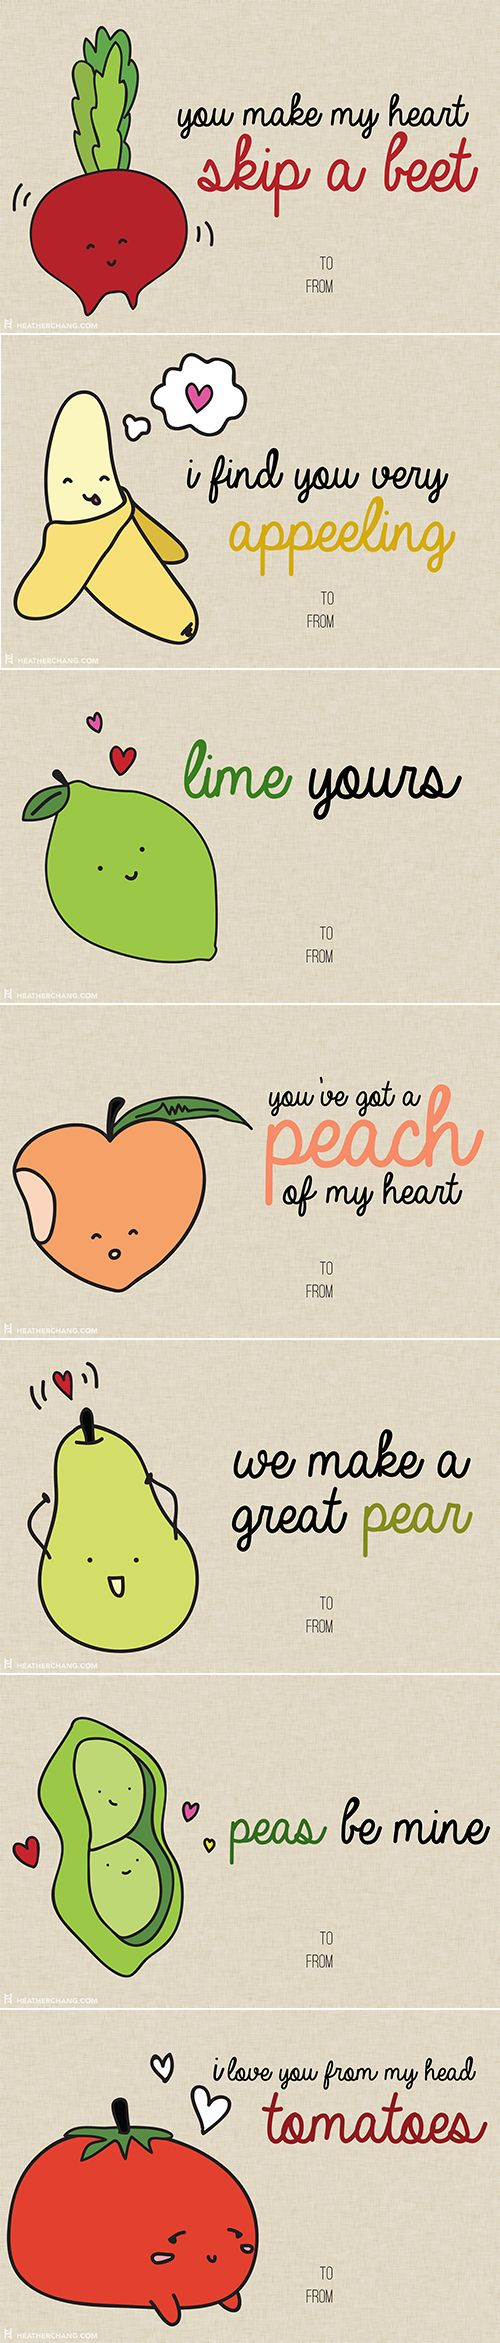 dating food puns for kids